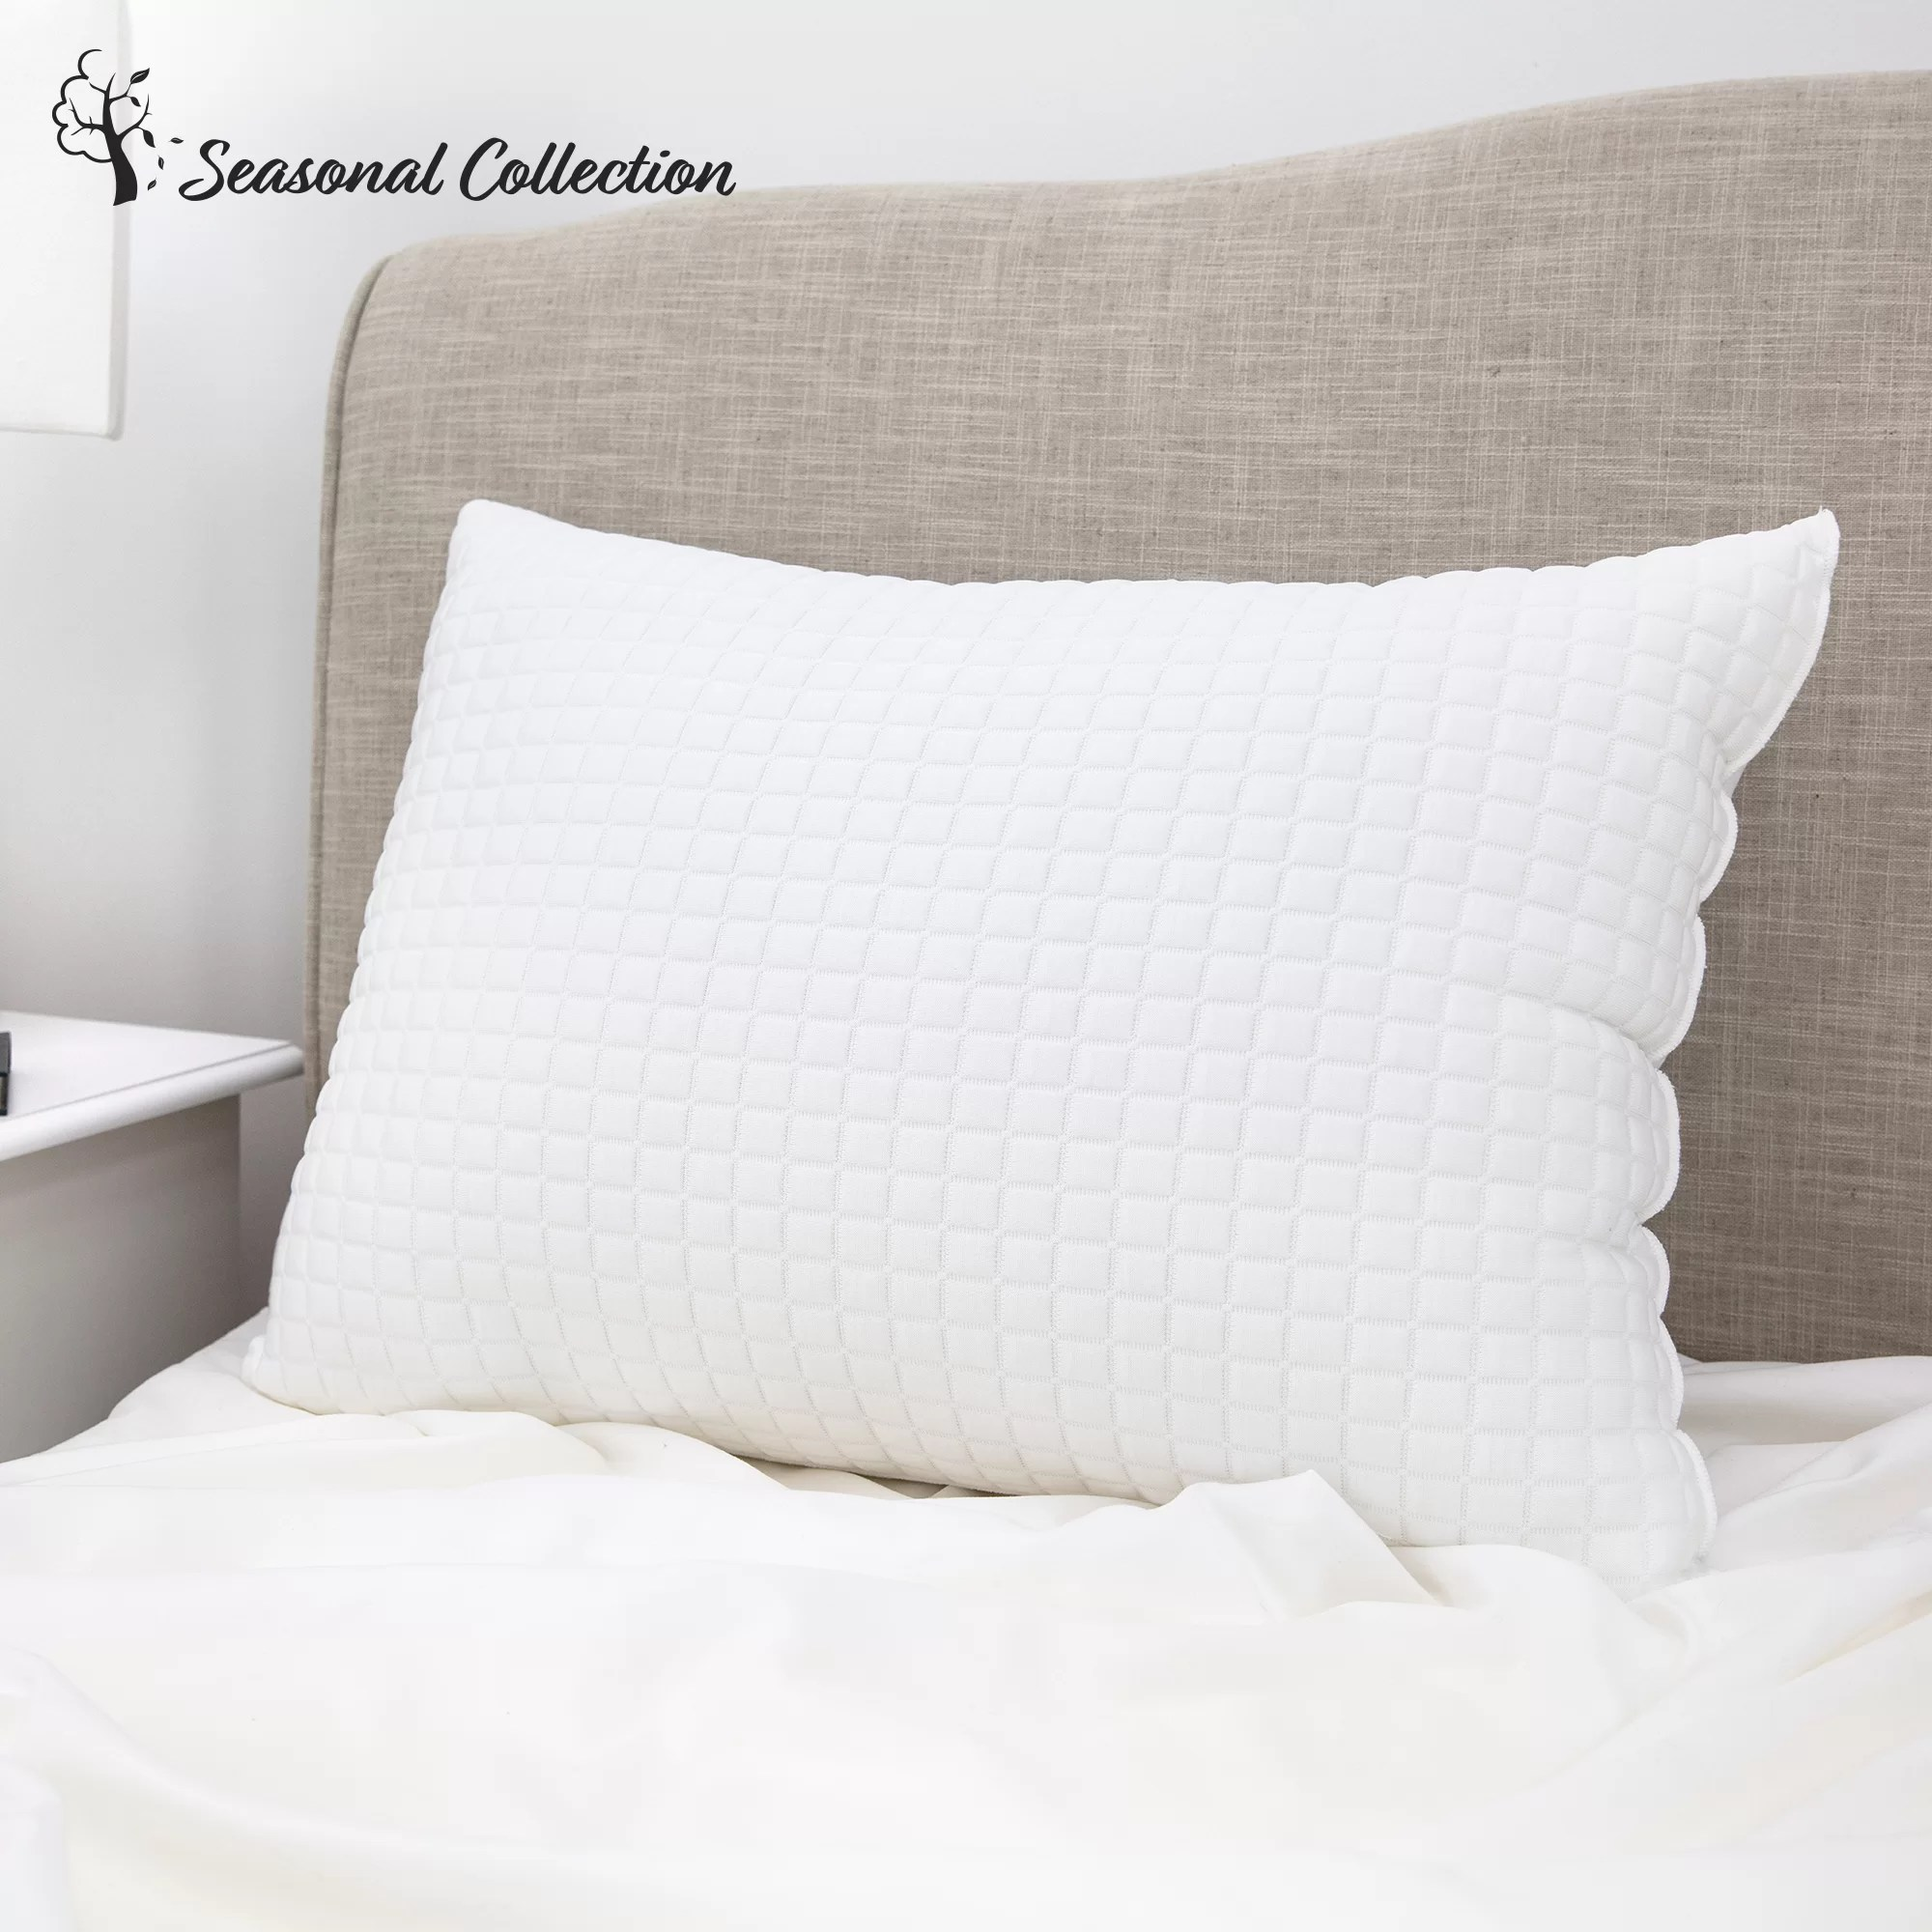 Standard Bed Pillows All Seasons Reversible Plush Fiber Standard Cooling Bed Pillow